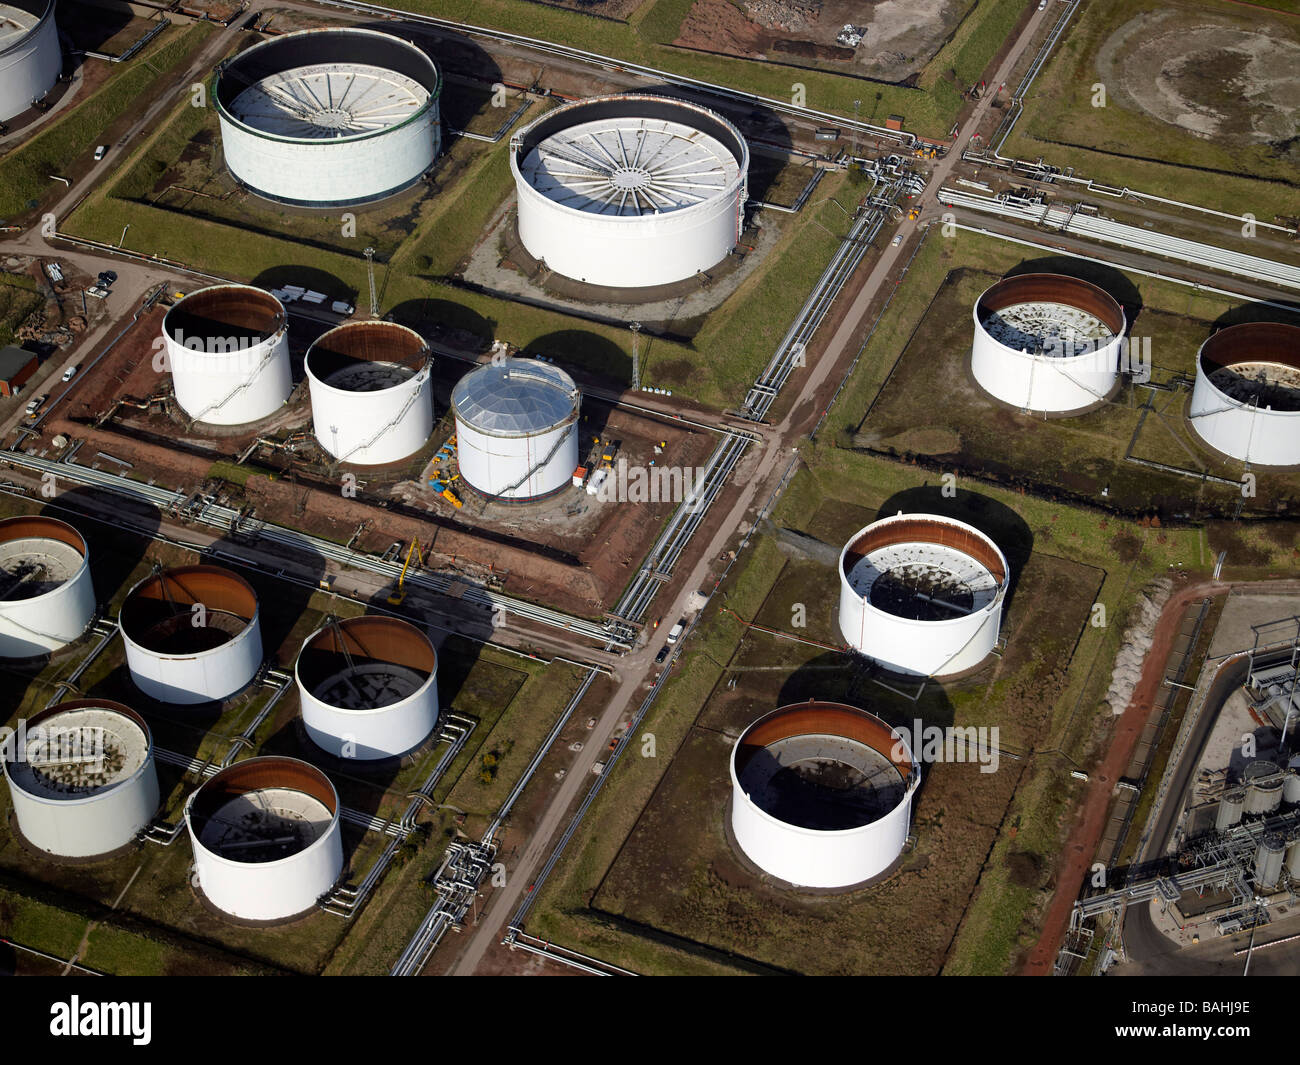 Oil Storage Tanks, Oil refinary, Stanlow, North West England - Stock Image